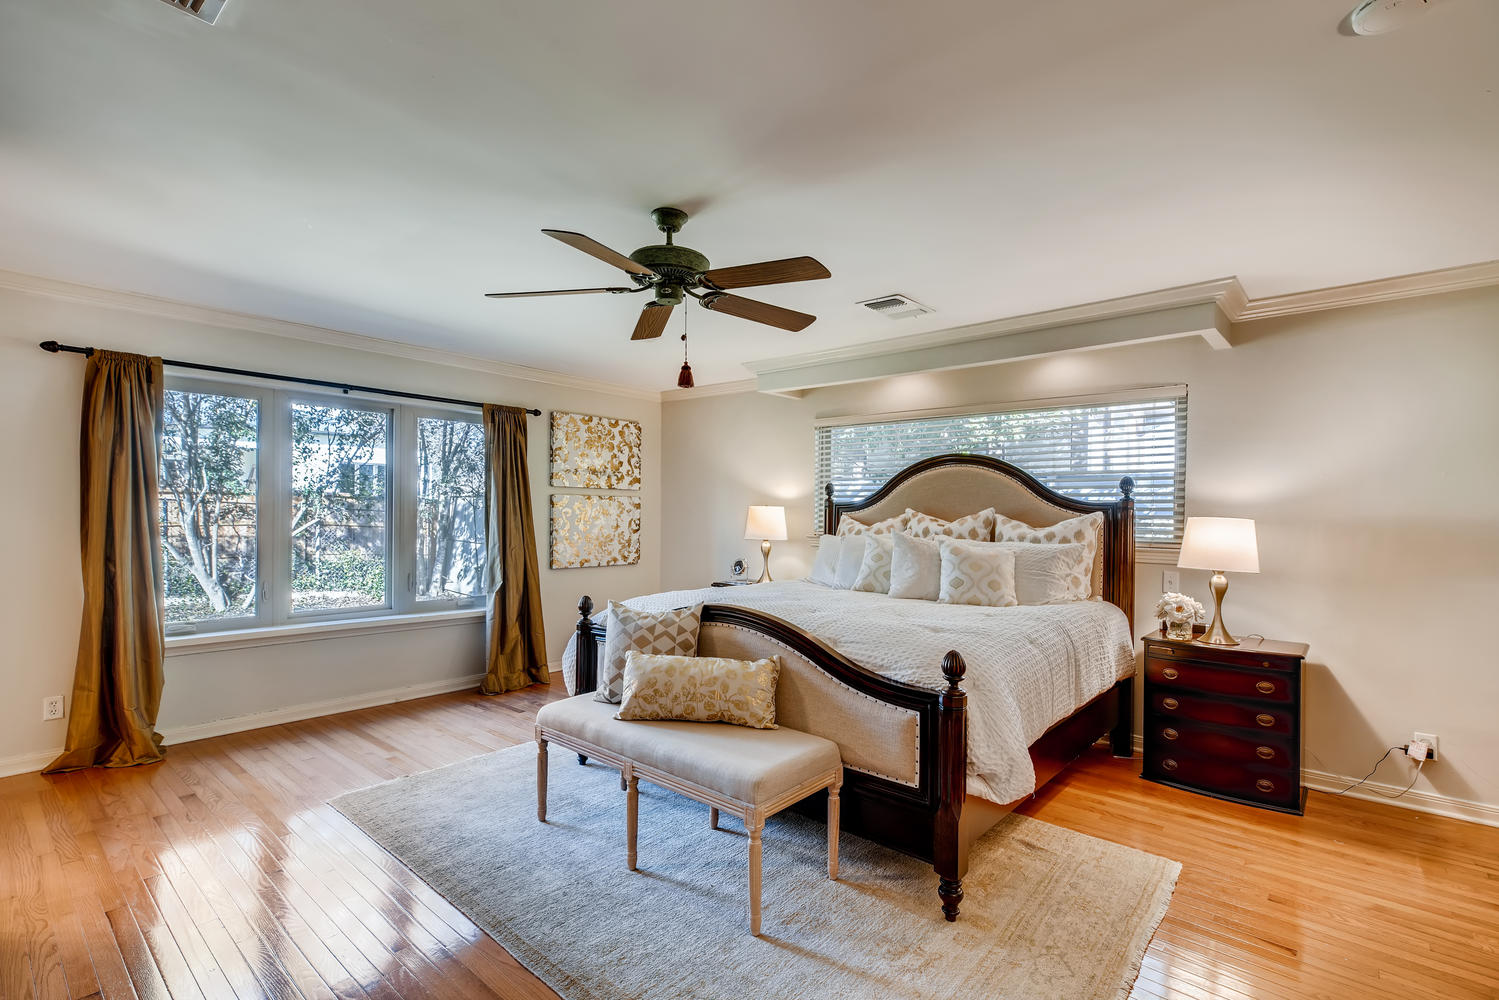 Full home staging in Las Vegas, Nevada, featuring a master bedroom